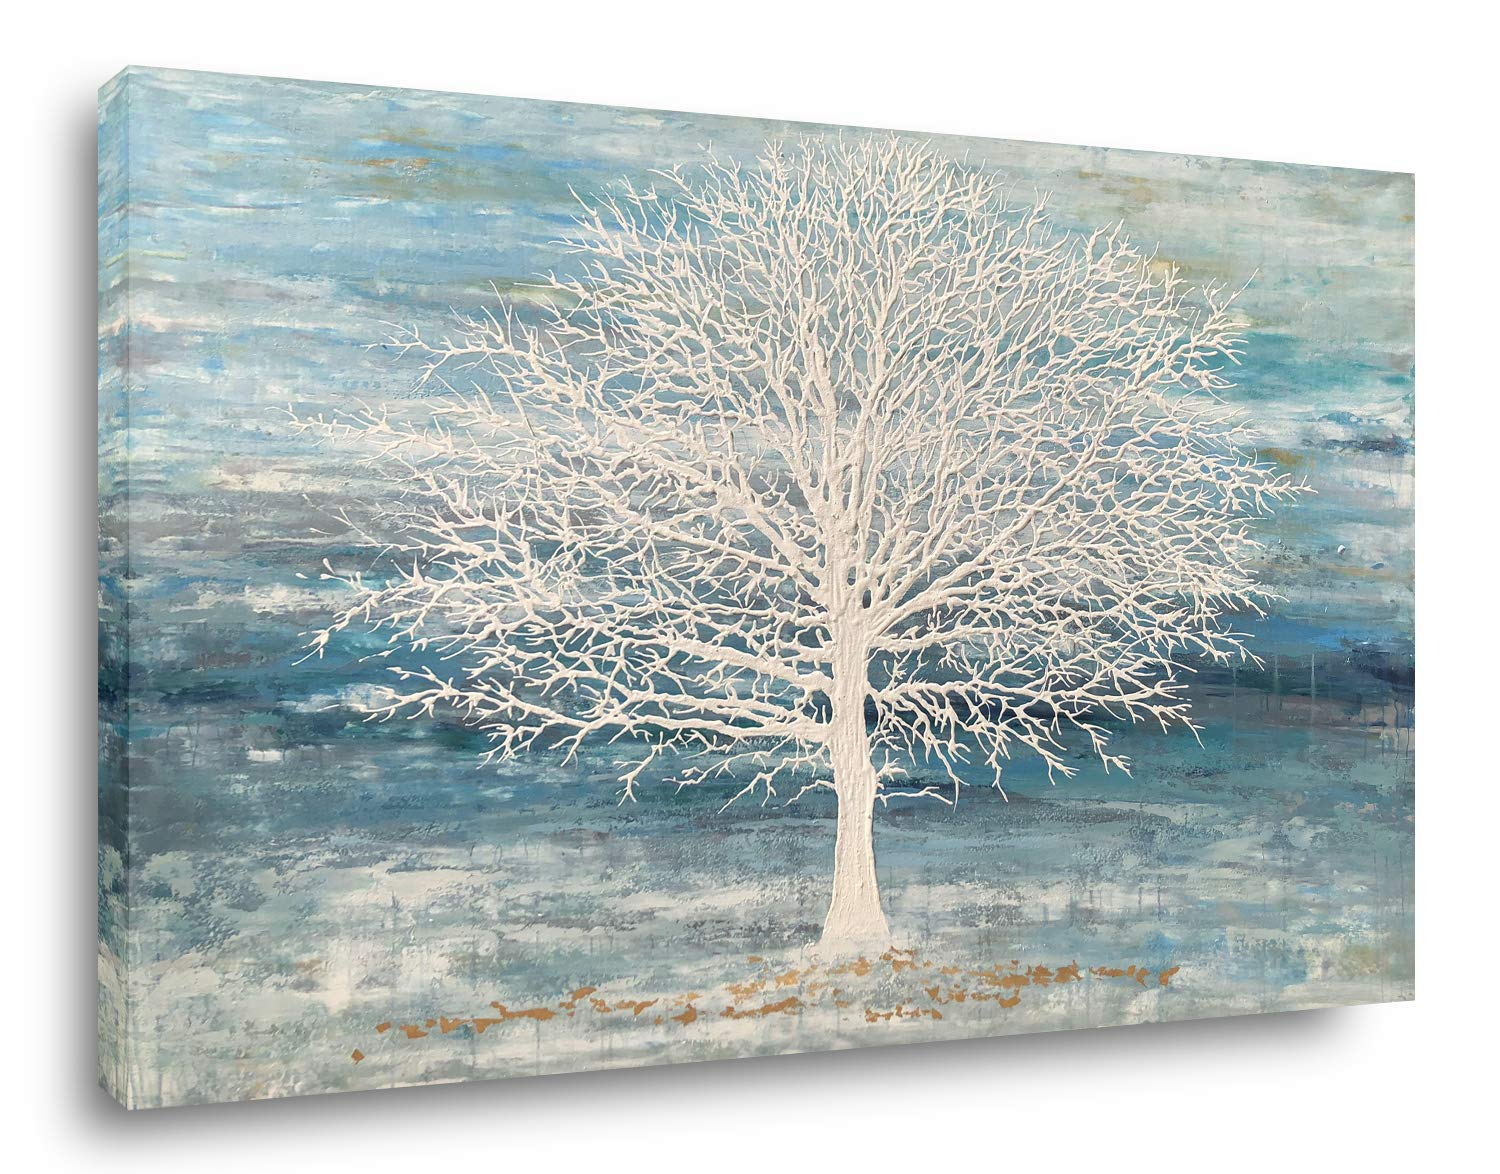 Yihui Arts Canvas Art Wall Decor, White Birch Trees Landscape Picture Painting, Modern Nature Teal Artwork Prints, Large Size Framed for Christmas Home Decor (Blue, 36Wx48L)